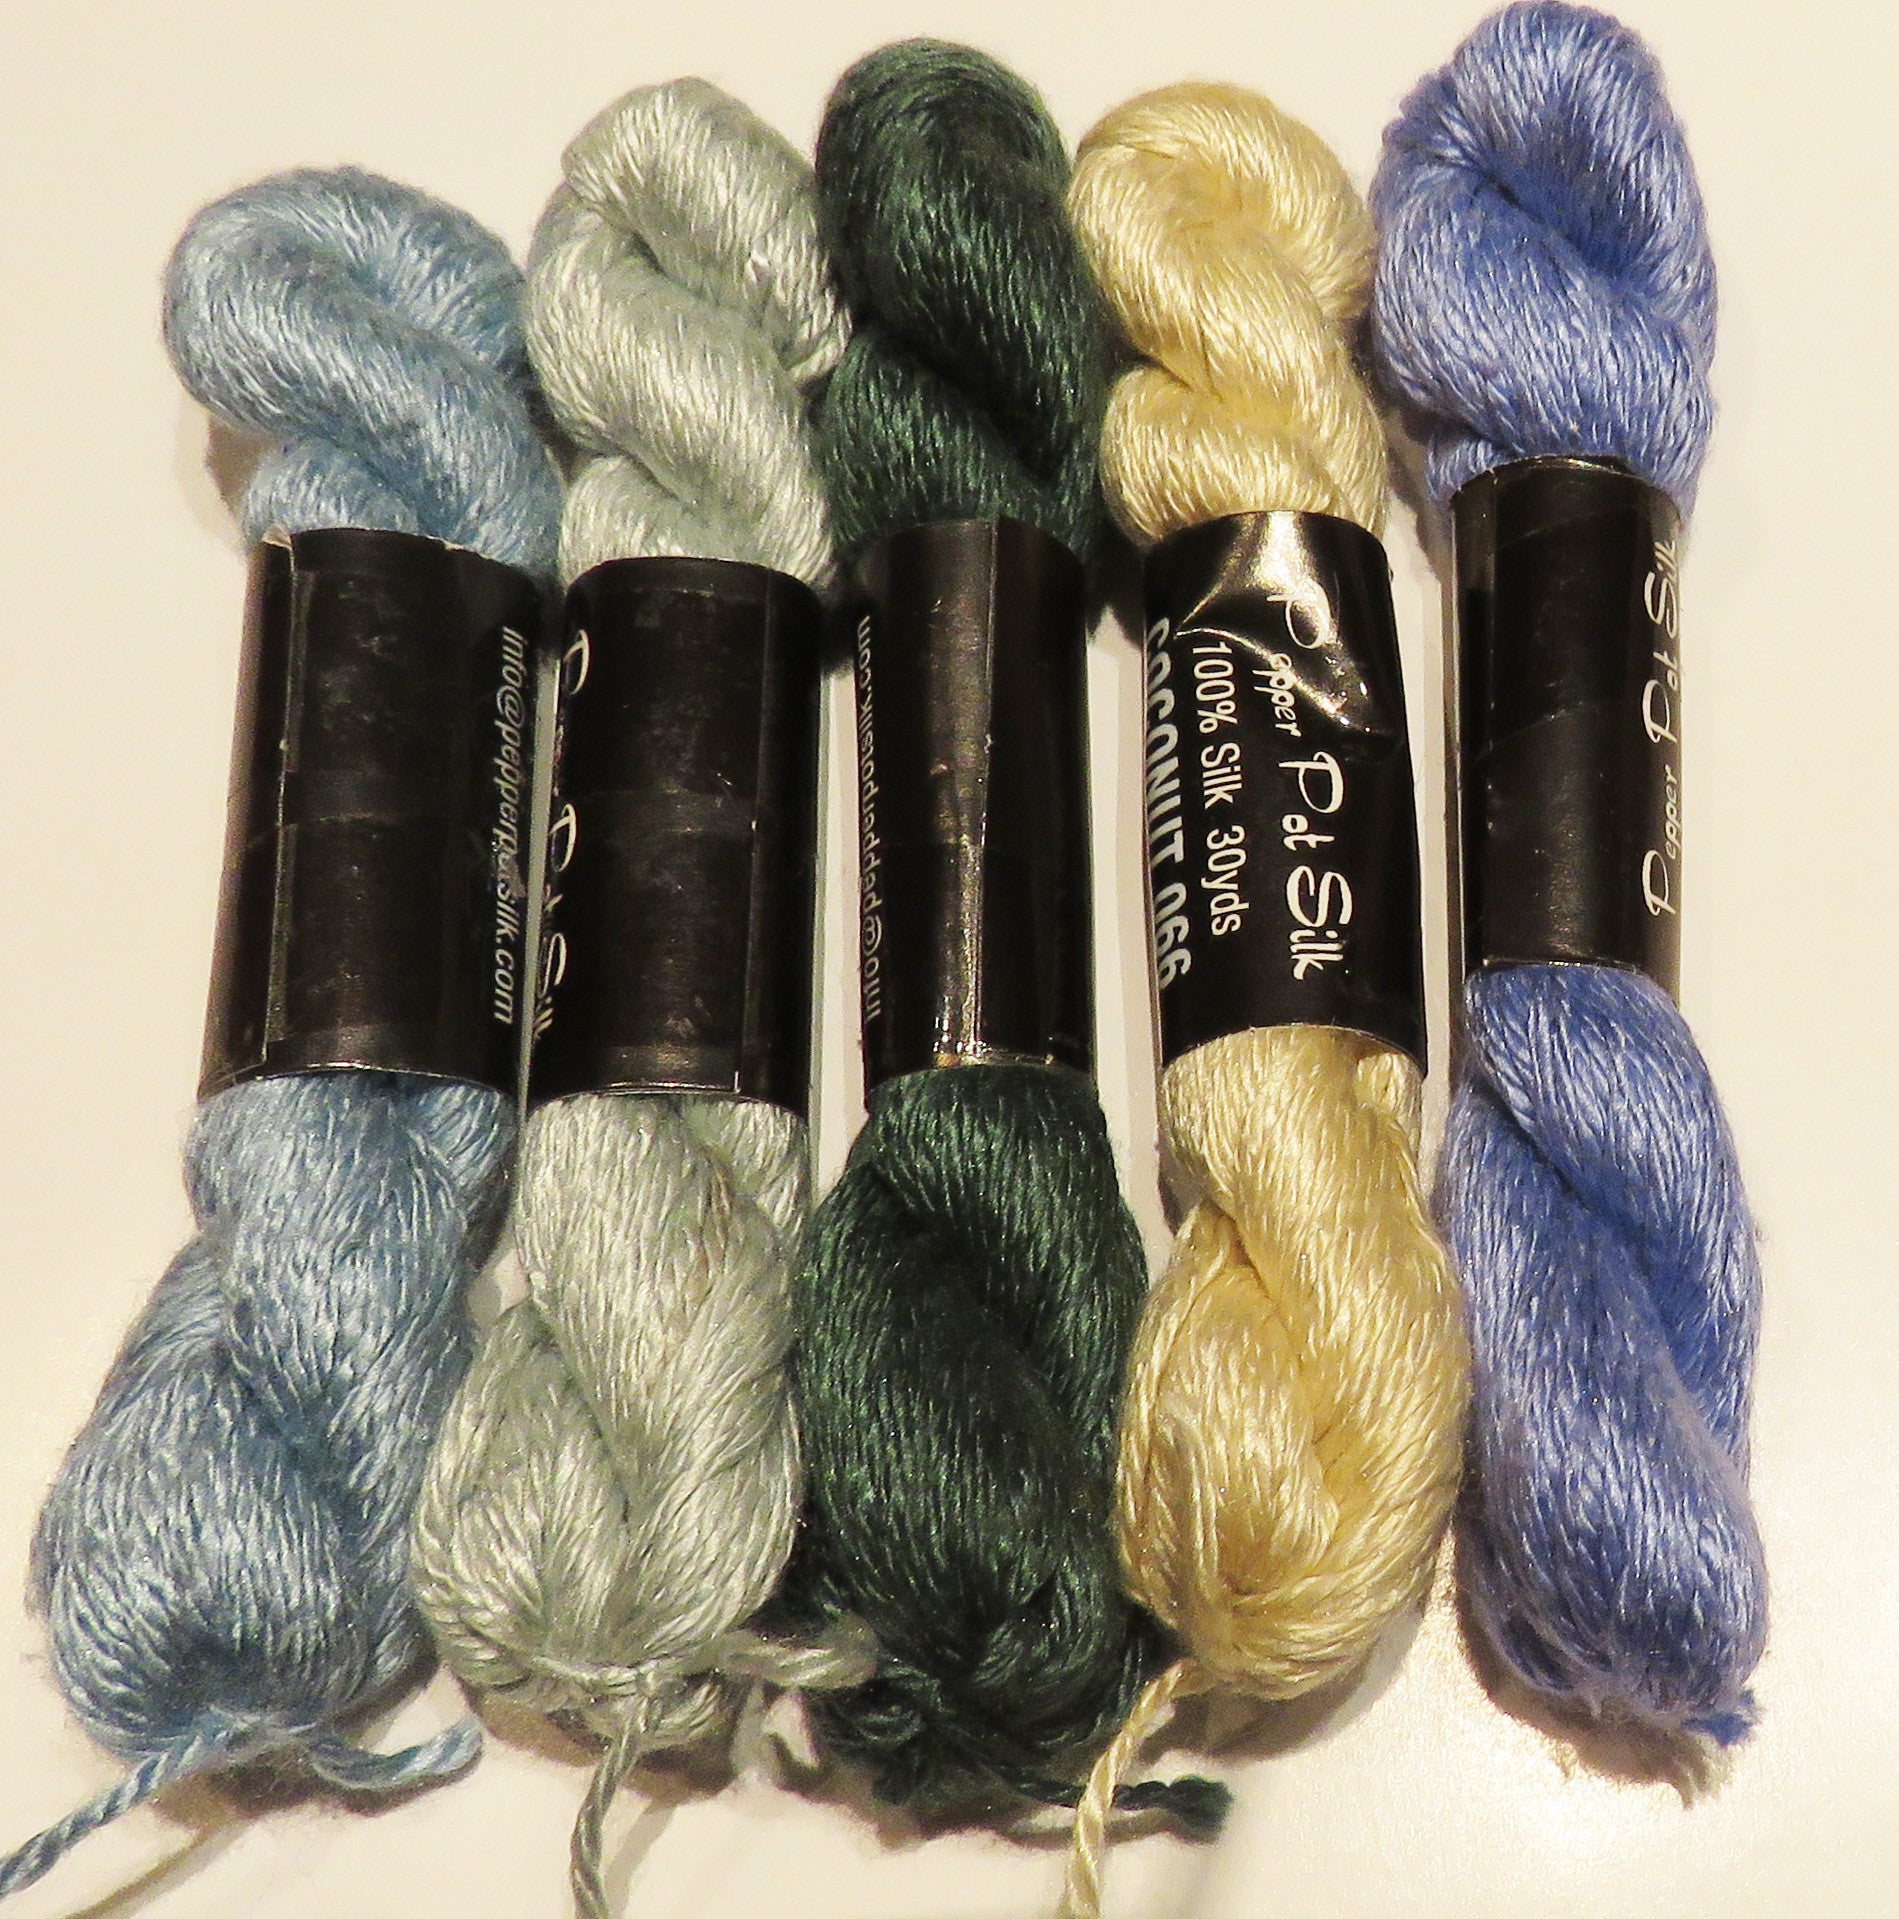 THREAD BUNDLE #28 - Exquisite Silk Perle